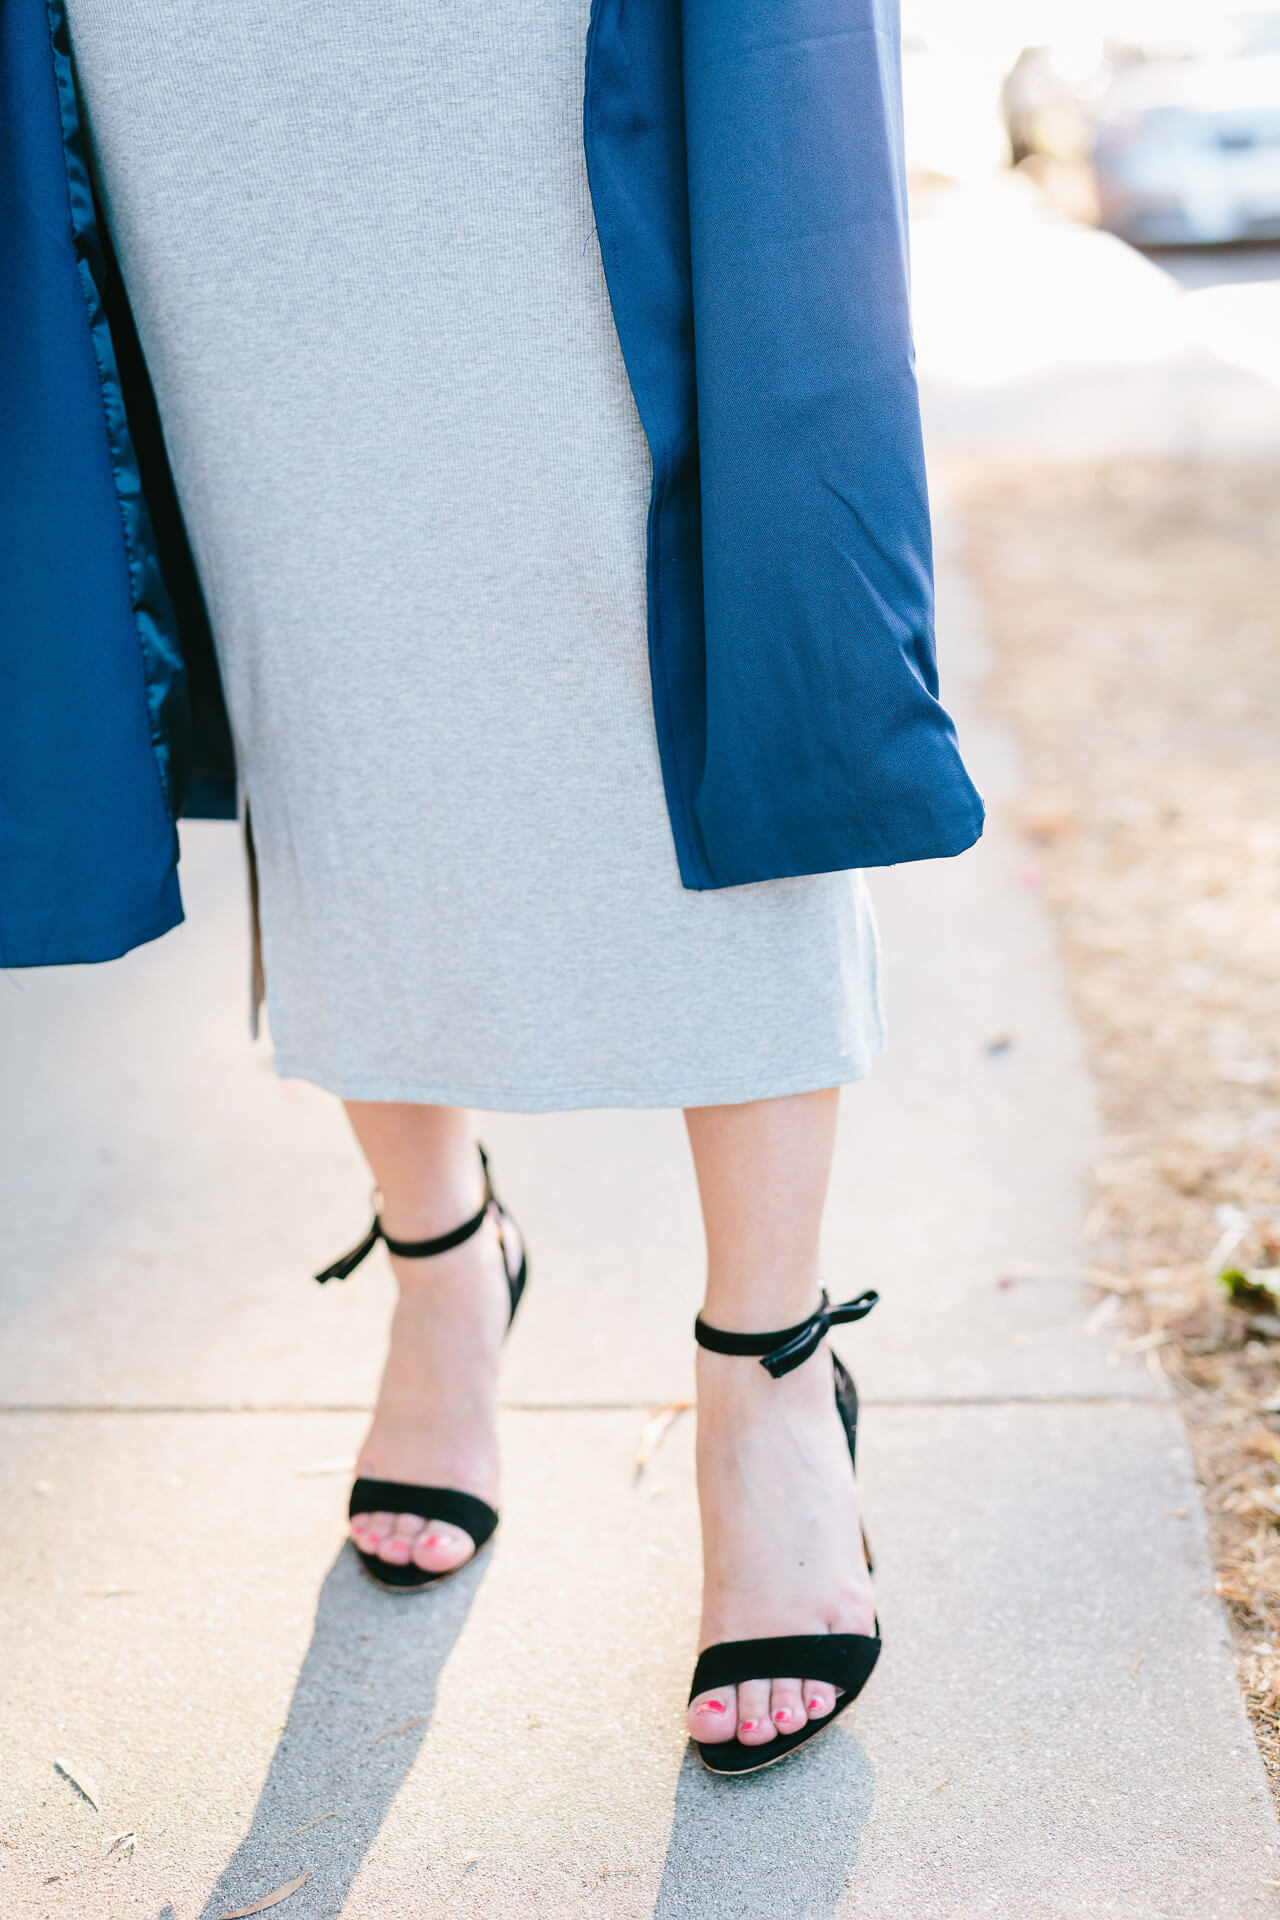 black steve madden sandals with bow accents